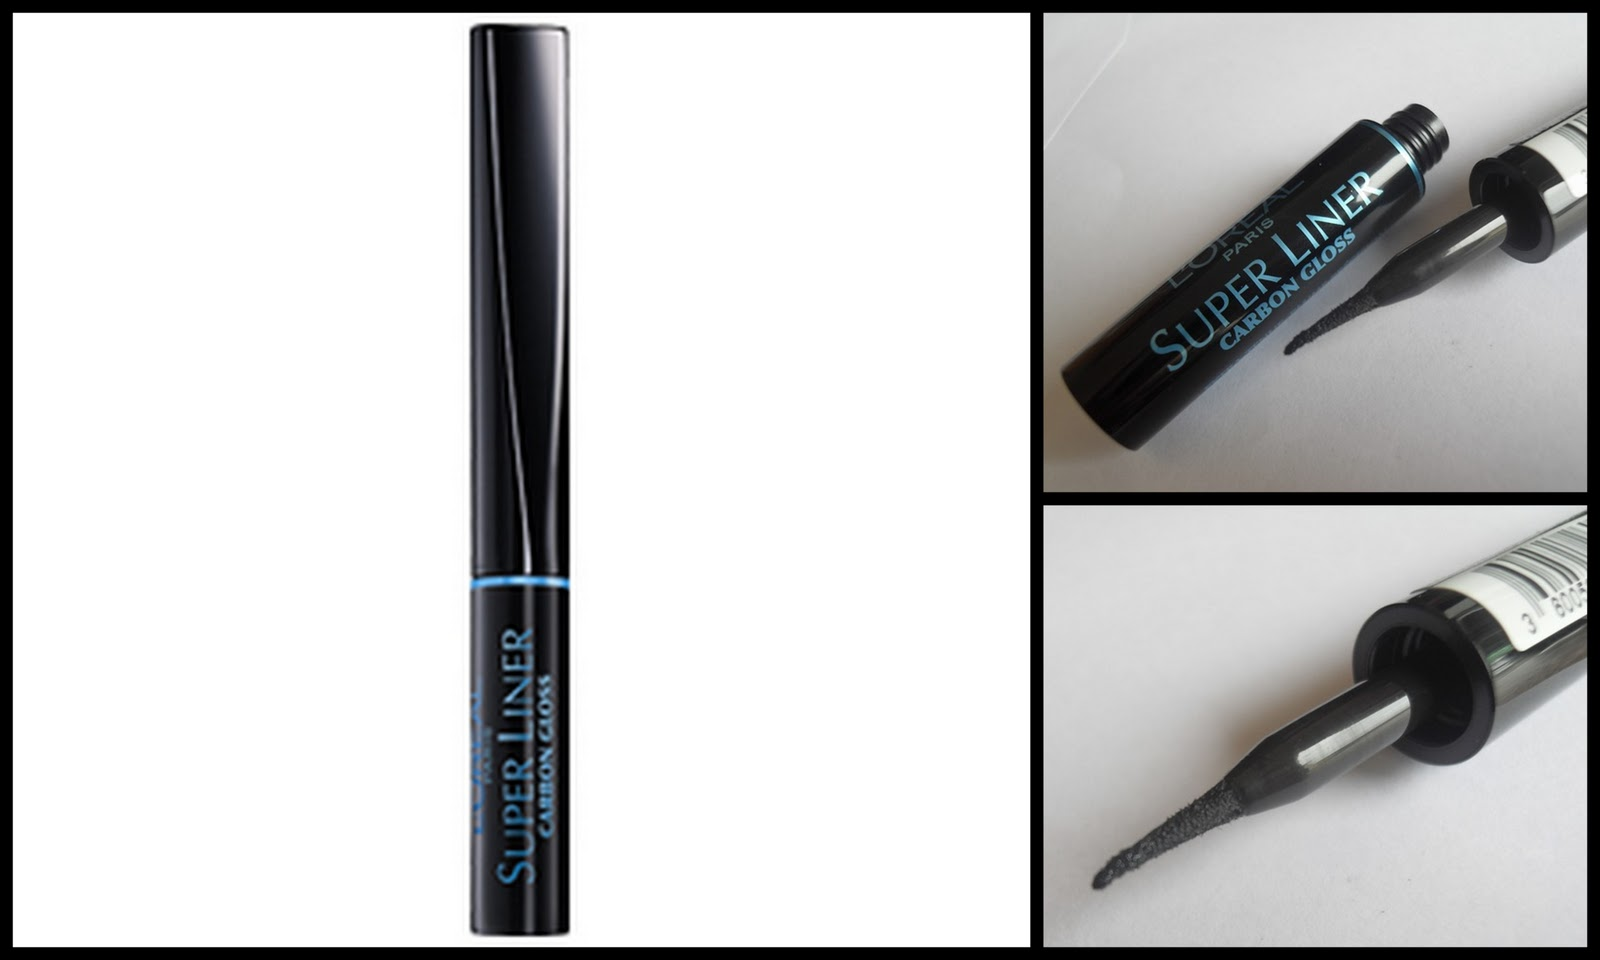 Dazzle and Sizzle: L'Oreal Super Liner Carbon Gloss Reviews